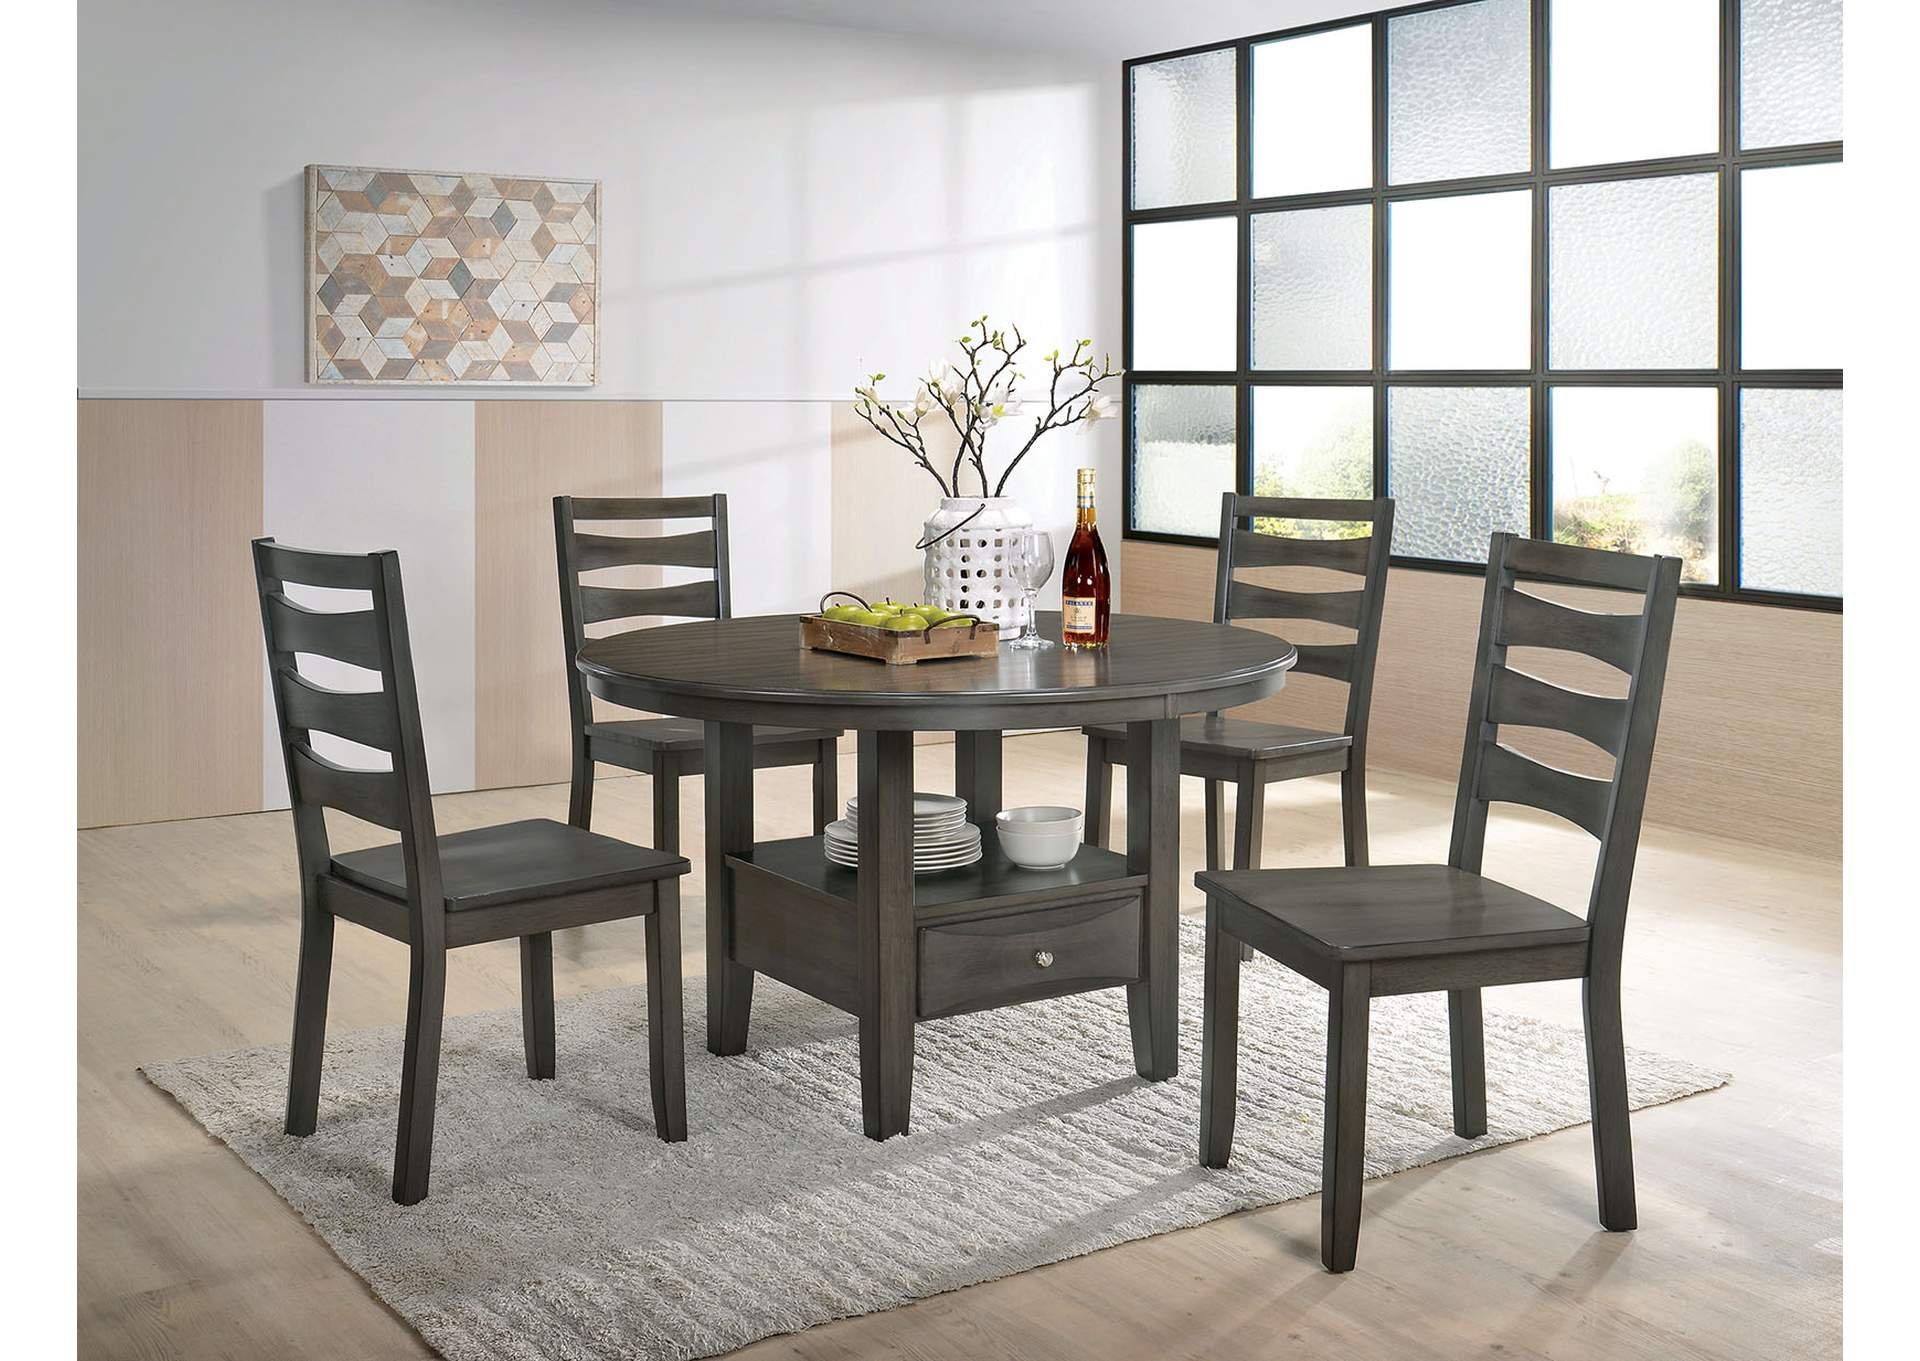 Caprice Antique Warm Gray Dining Table Best Buy Furniture And Mattress